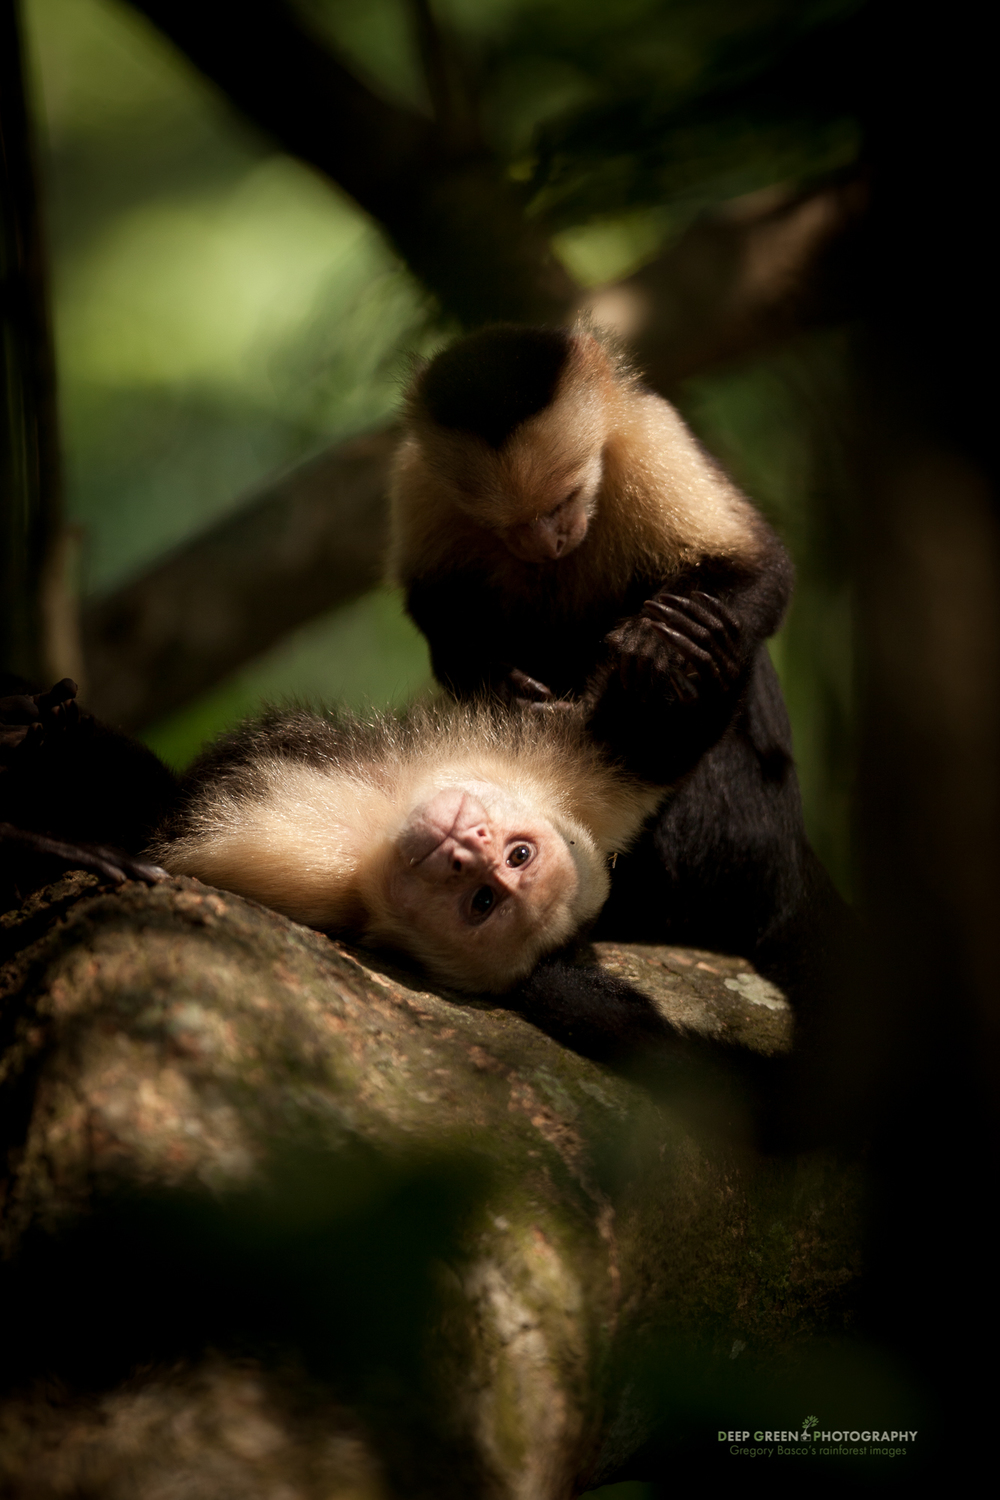 White-faced monkeys grooming in Costa Rica's Manuel Antonio National Park.